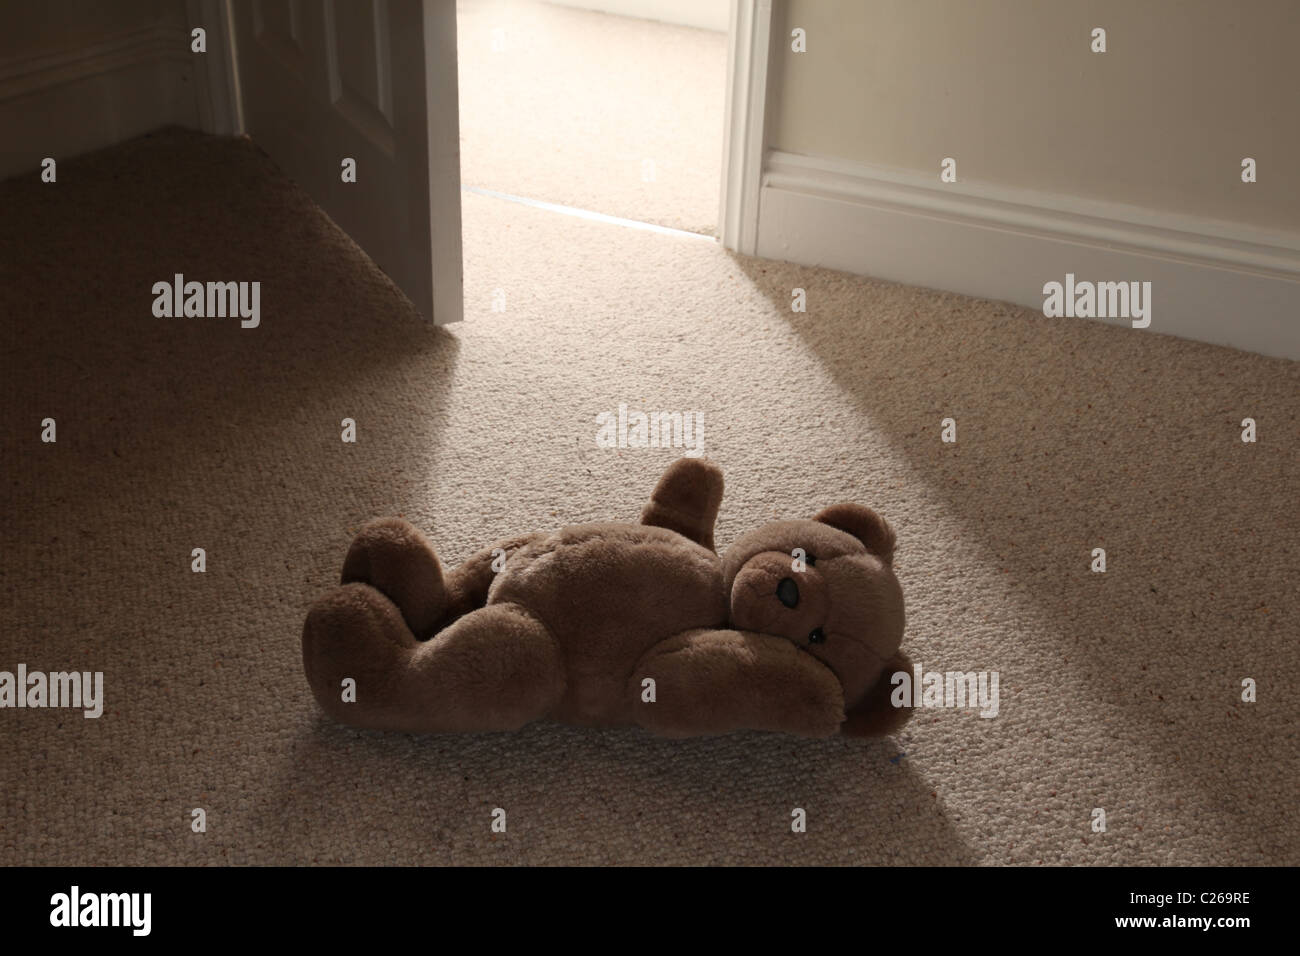 A teddy on the floor by an open door. - Stock Image